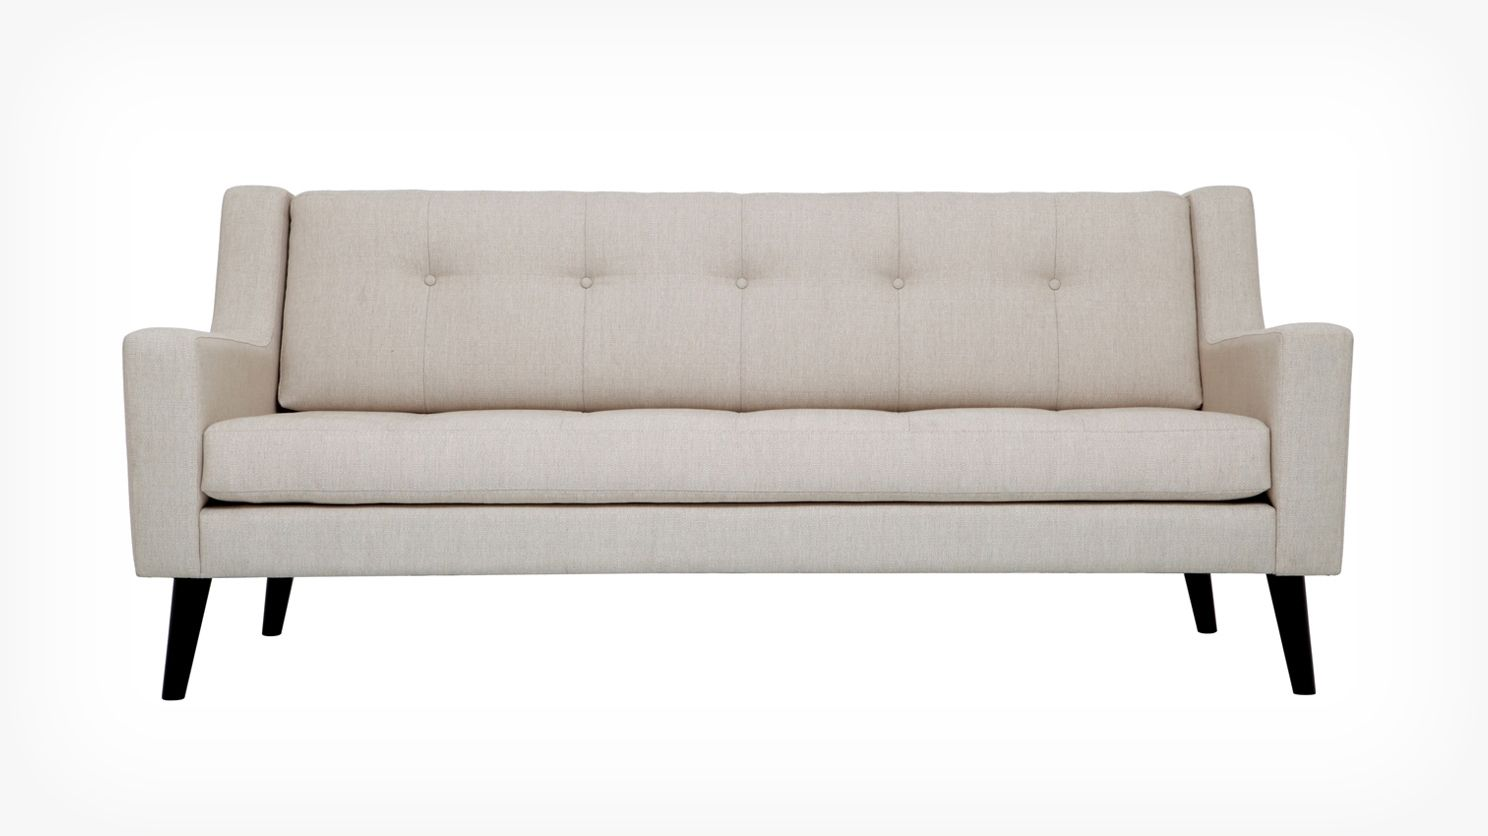 sectional sofas nyc showroom restoration hardware sofa couch elise fabric eq3 modern furniture 1399